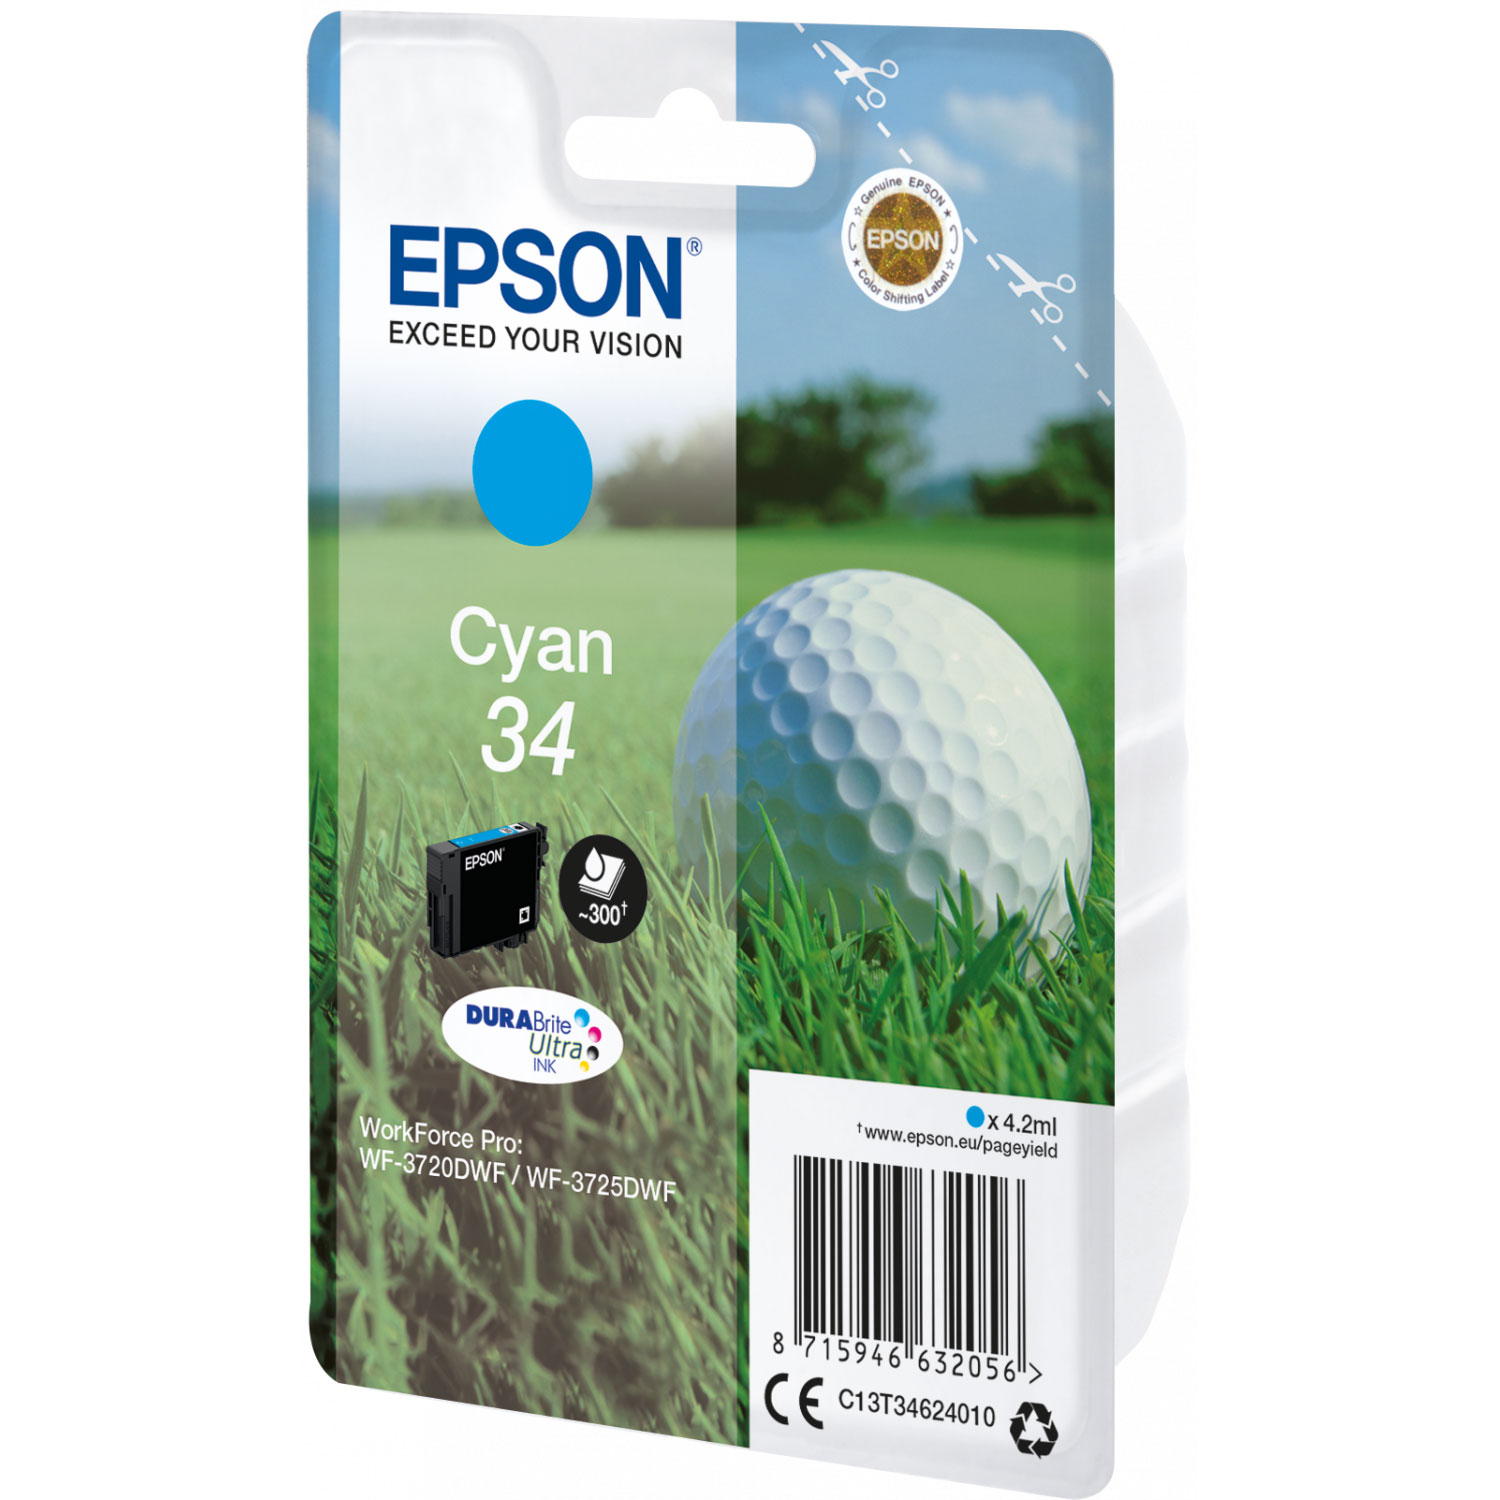 epson balle de golf cyan 34 cartouche imprimante epson. Black Bedroom Furniture Sets. Home Design Ideas